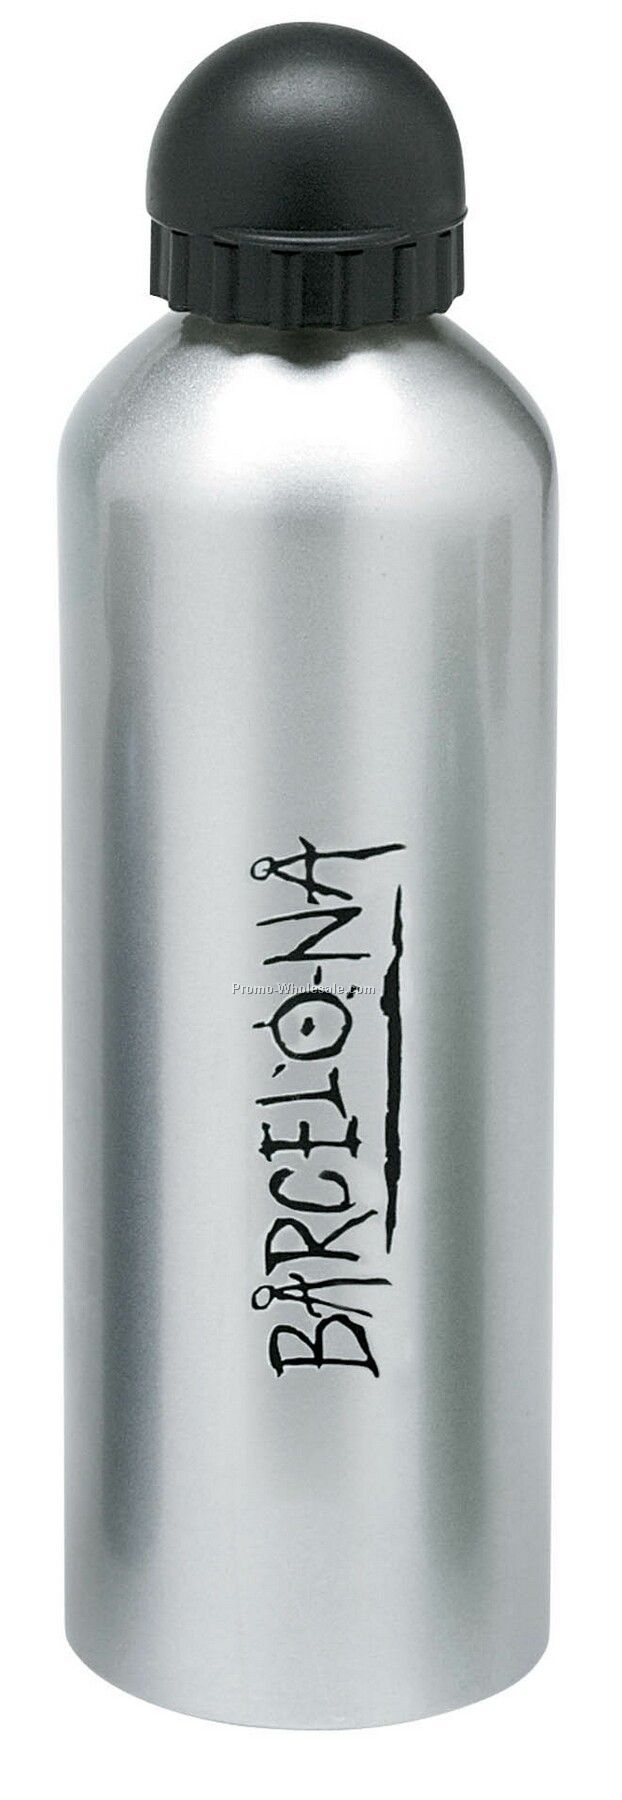 Giftcor 1 Liter Green Aluminum Sport Flask II W/ Dome Sports Top